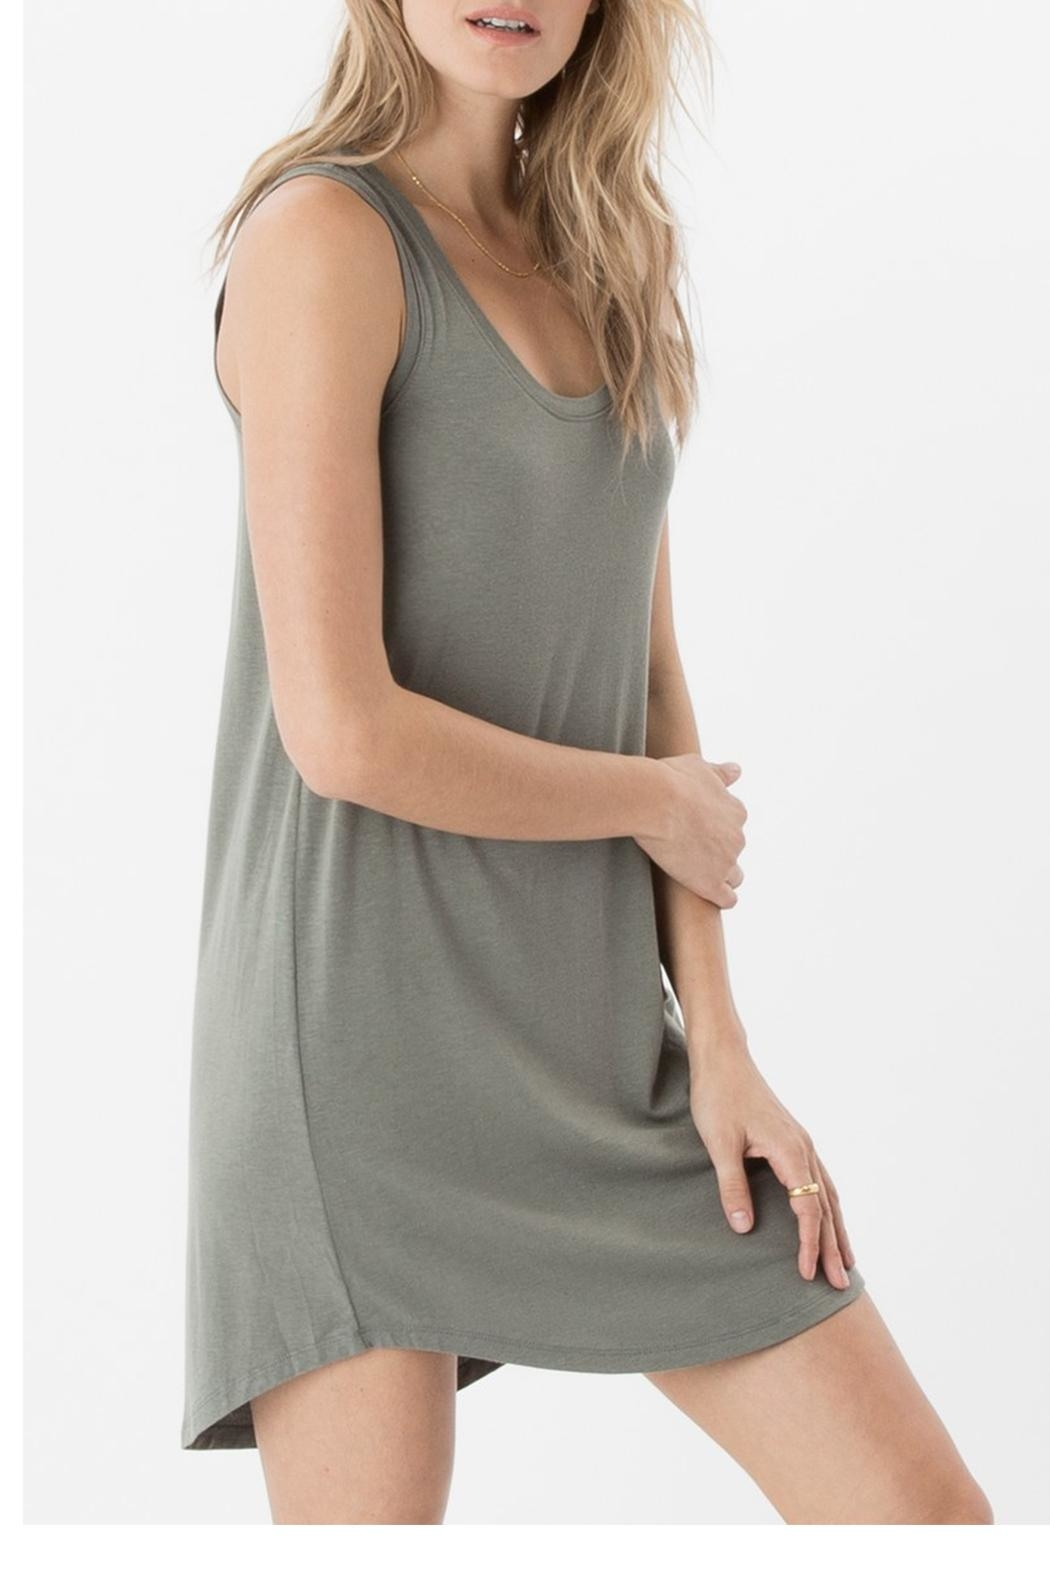 z supply Coastline Scoop Tunic Dress - Side Cropped Image